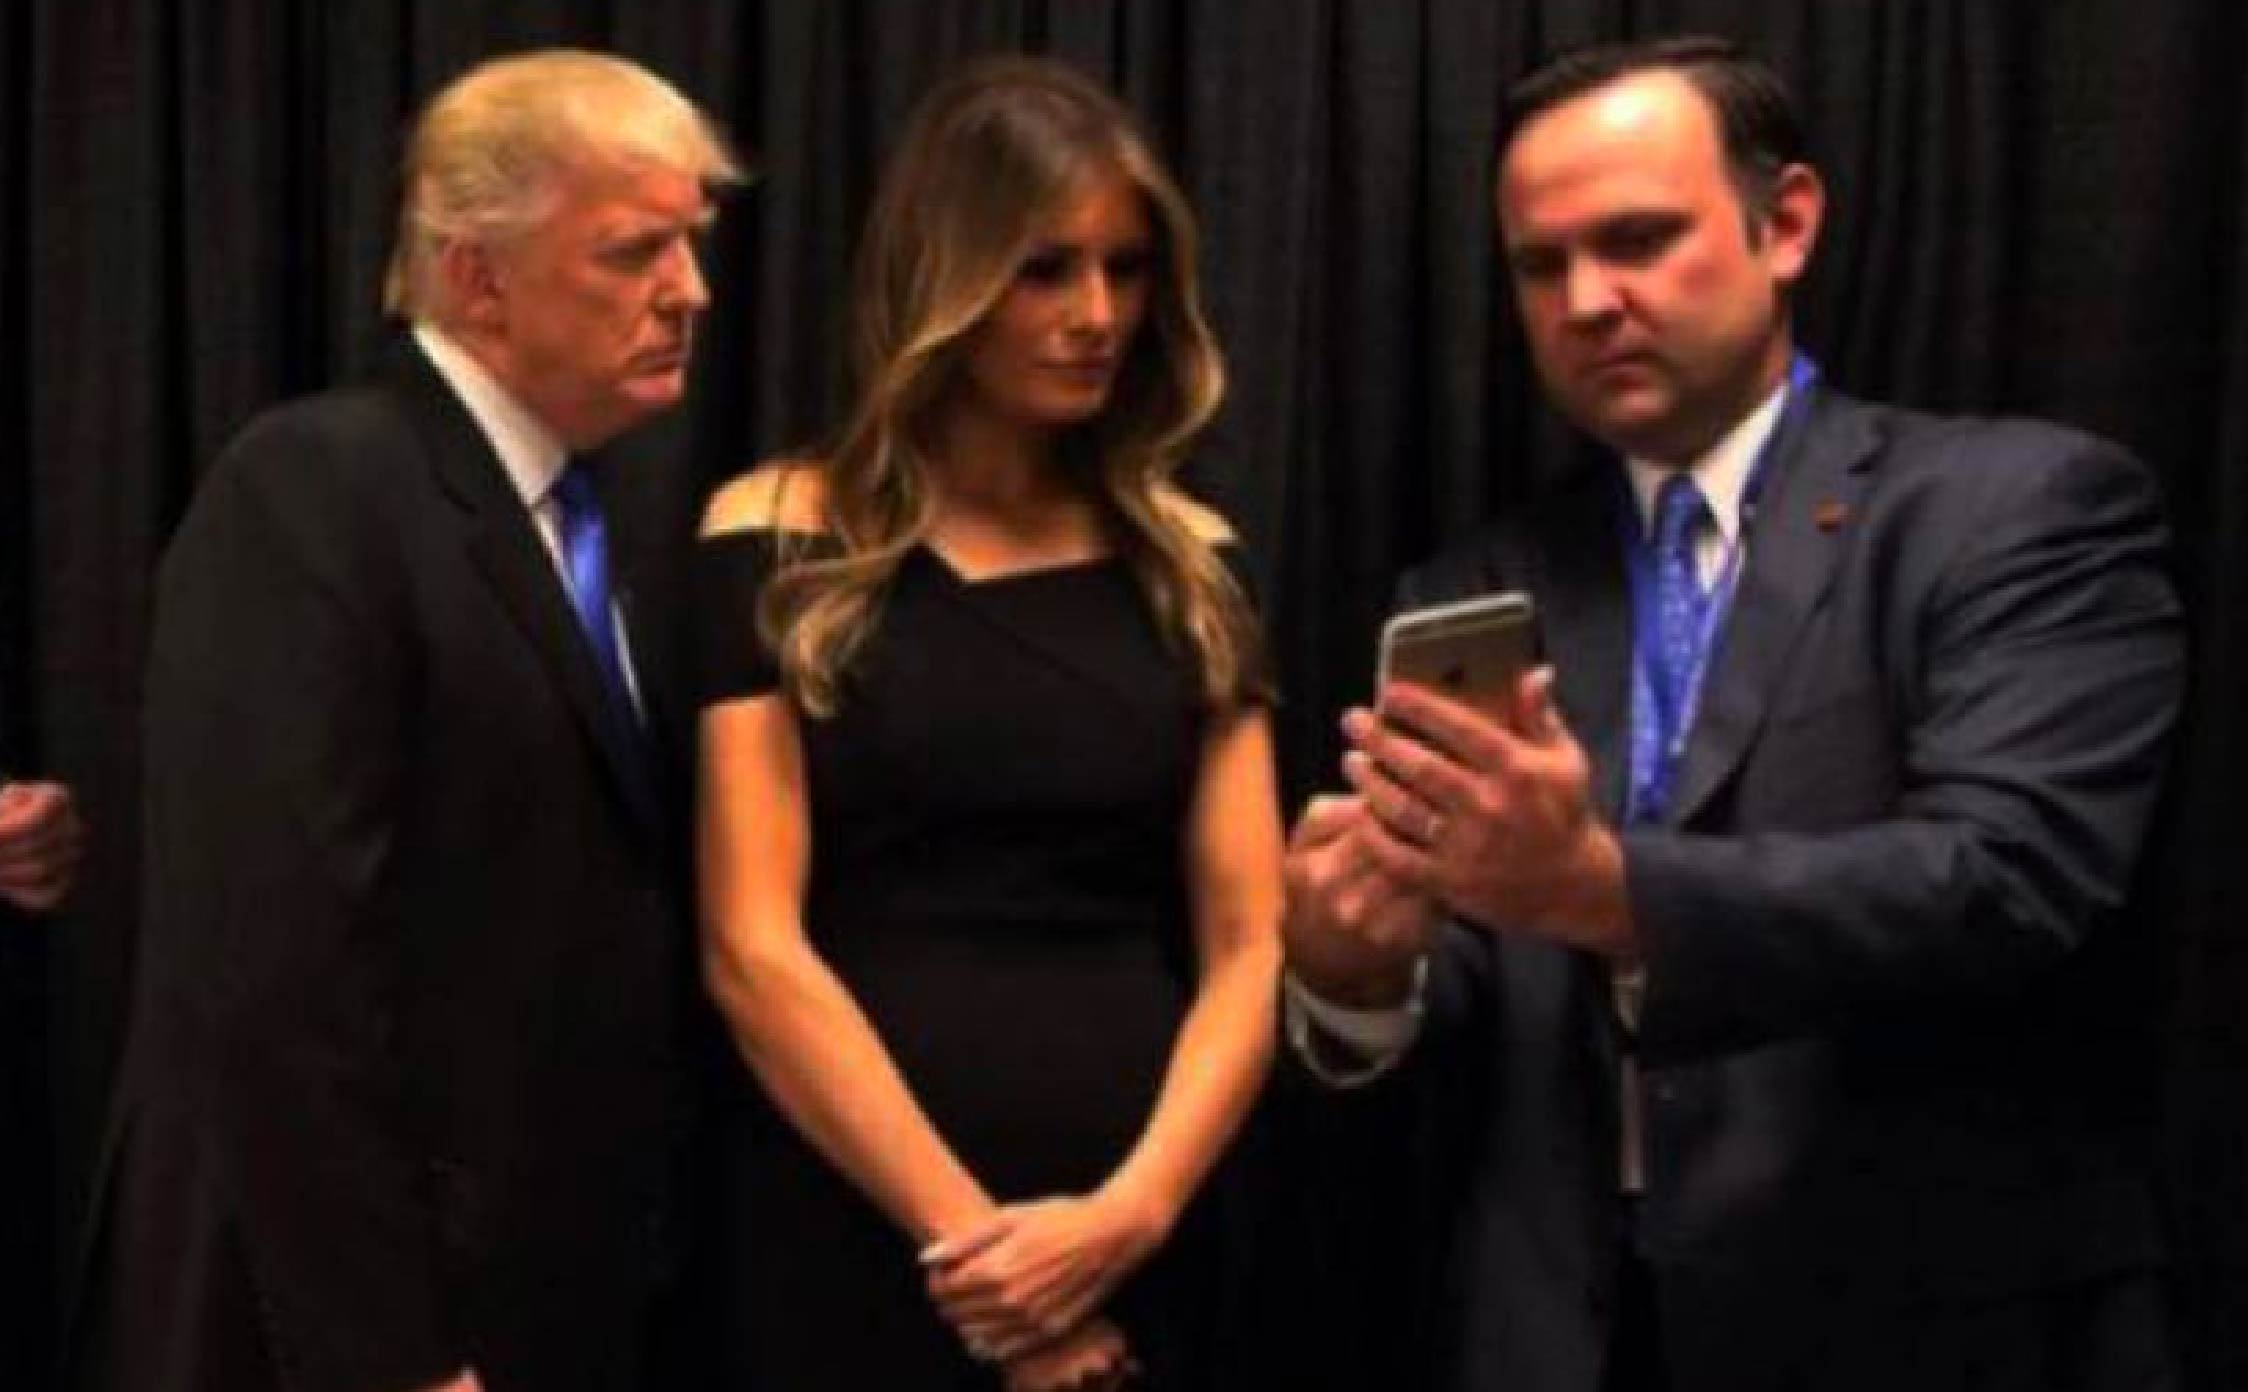 Dan Scavino Teases Everyone With a Video About What's Coming...